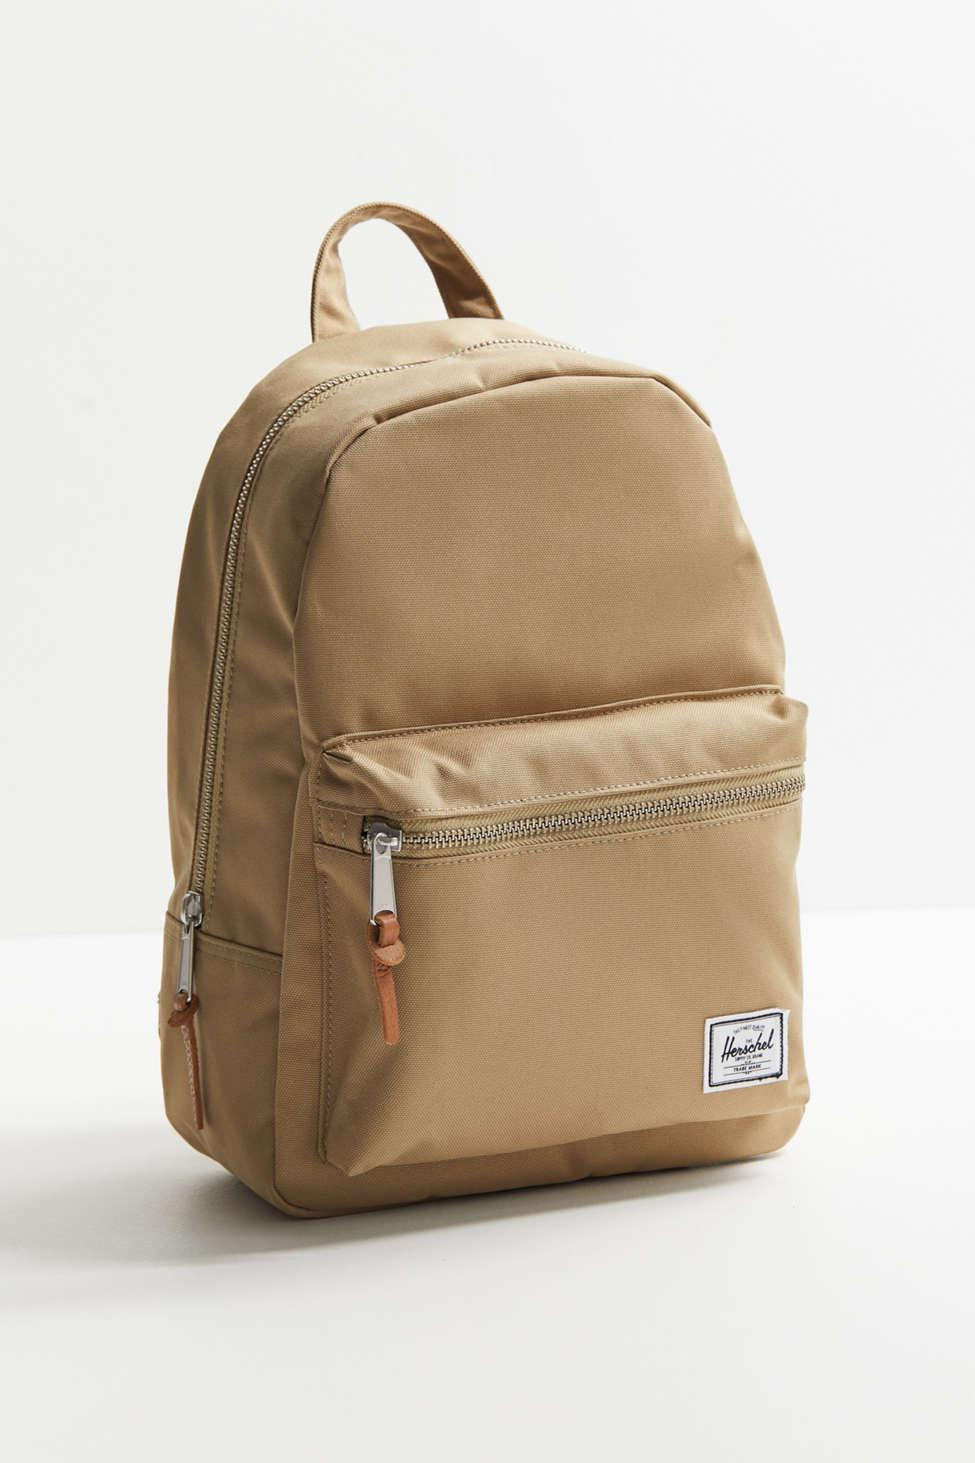 4a69e4b30235 Lyst - Herschel Supply Co. Uo Exclusive Grove Xs Polyester Backpack ...